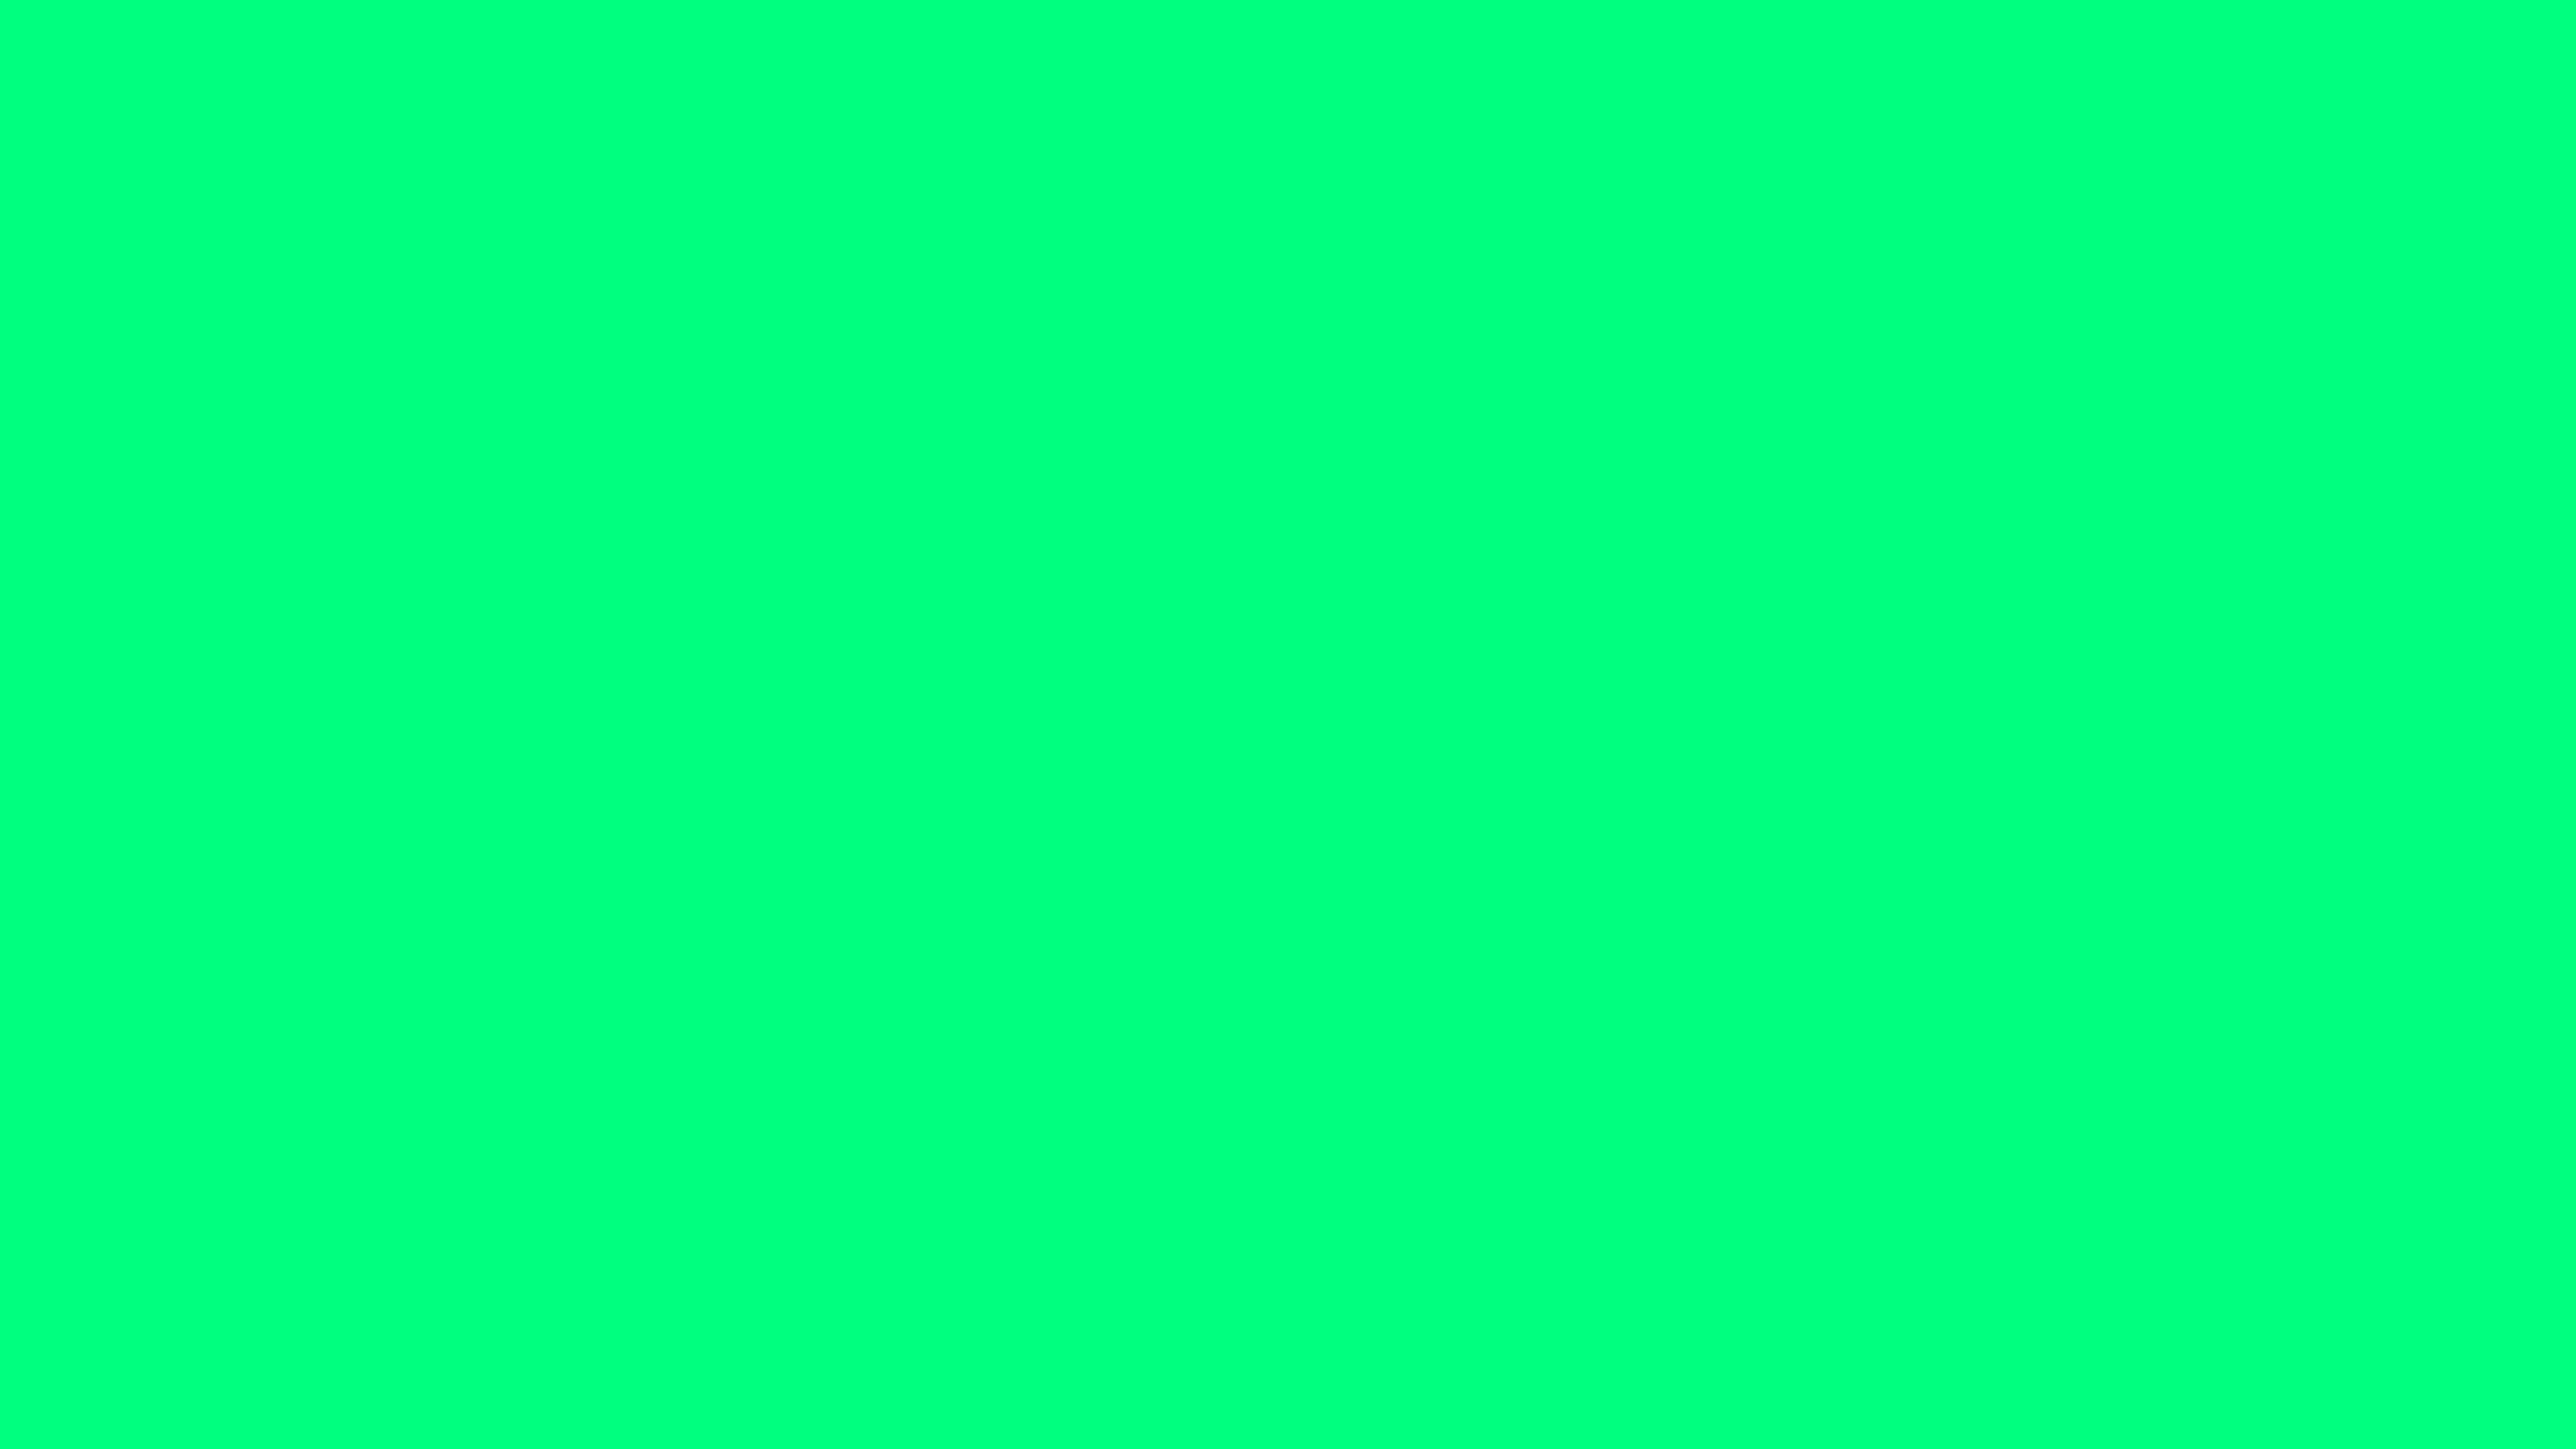 5120x2880 Guppie Green Solid Color Background